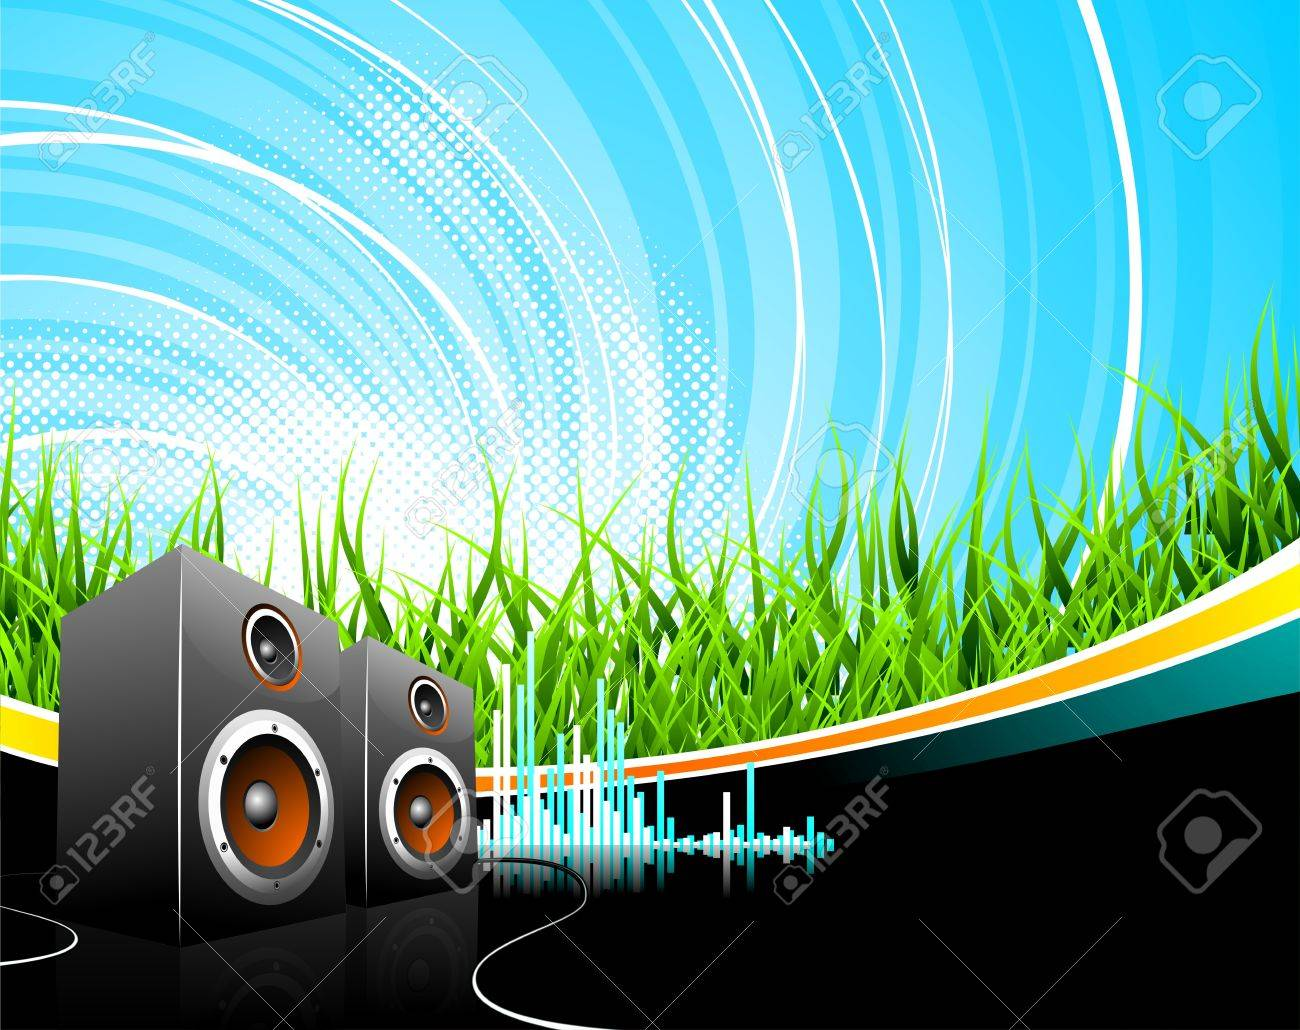 Music illustration with speakers on a field background. Stock Vector - 7473466